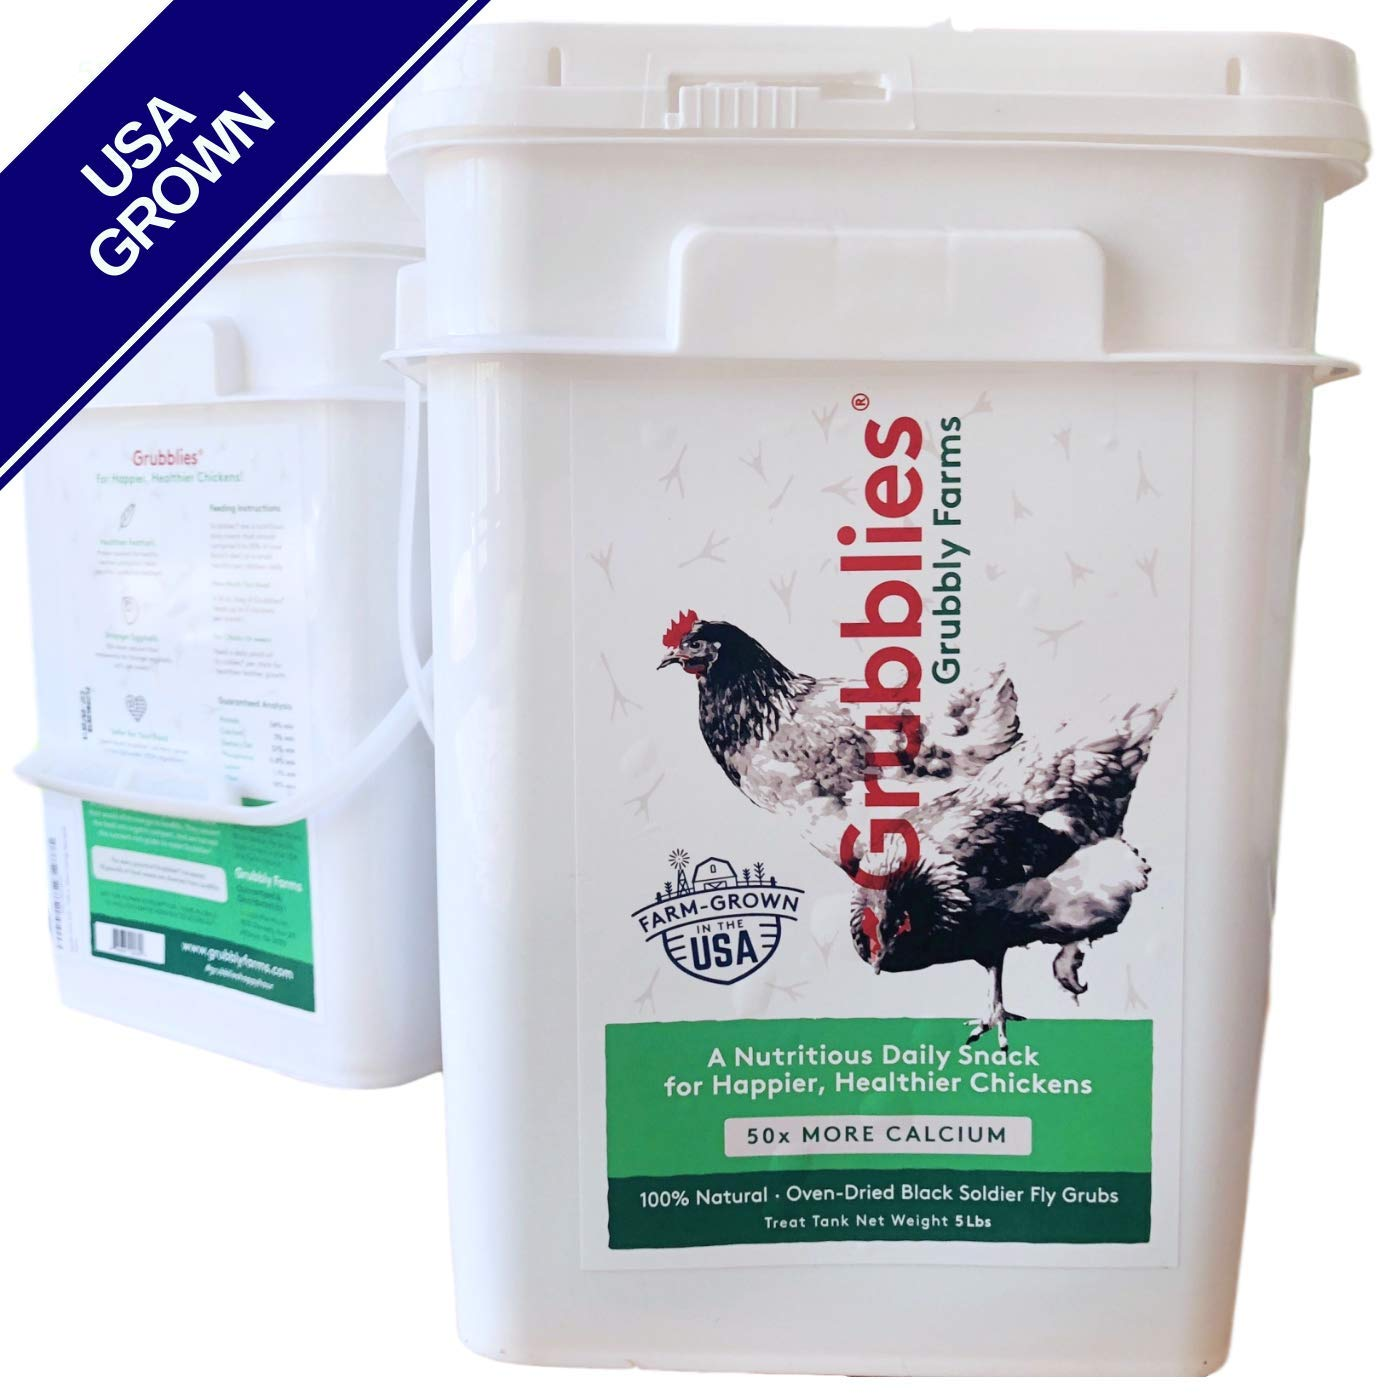 Grubblies - 5 lb. Treat Tank USA-Grown Non-GMO Grubs, 50x More Calcium Than Mealworms - a Daily Nutritious Snack for Chickens - 100% Natural & Oven-Dried for Happy, Healthy Hens by Grubbly Farms